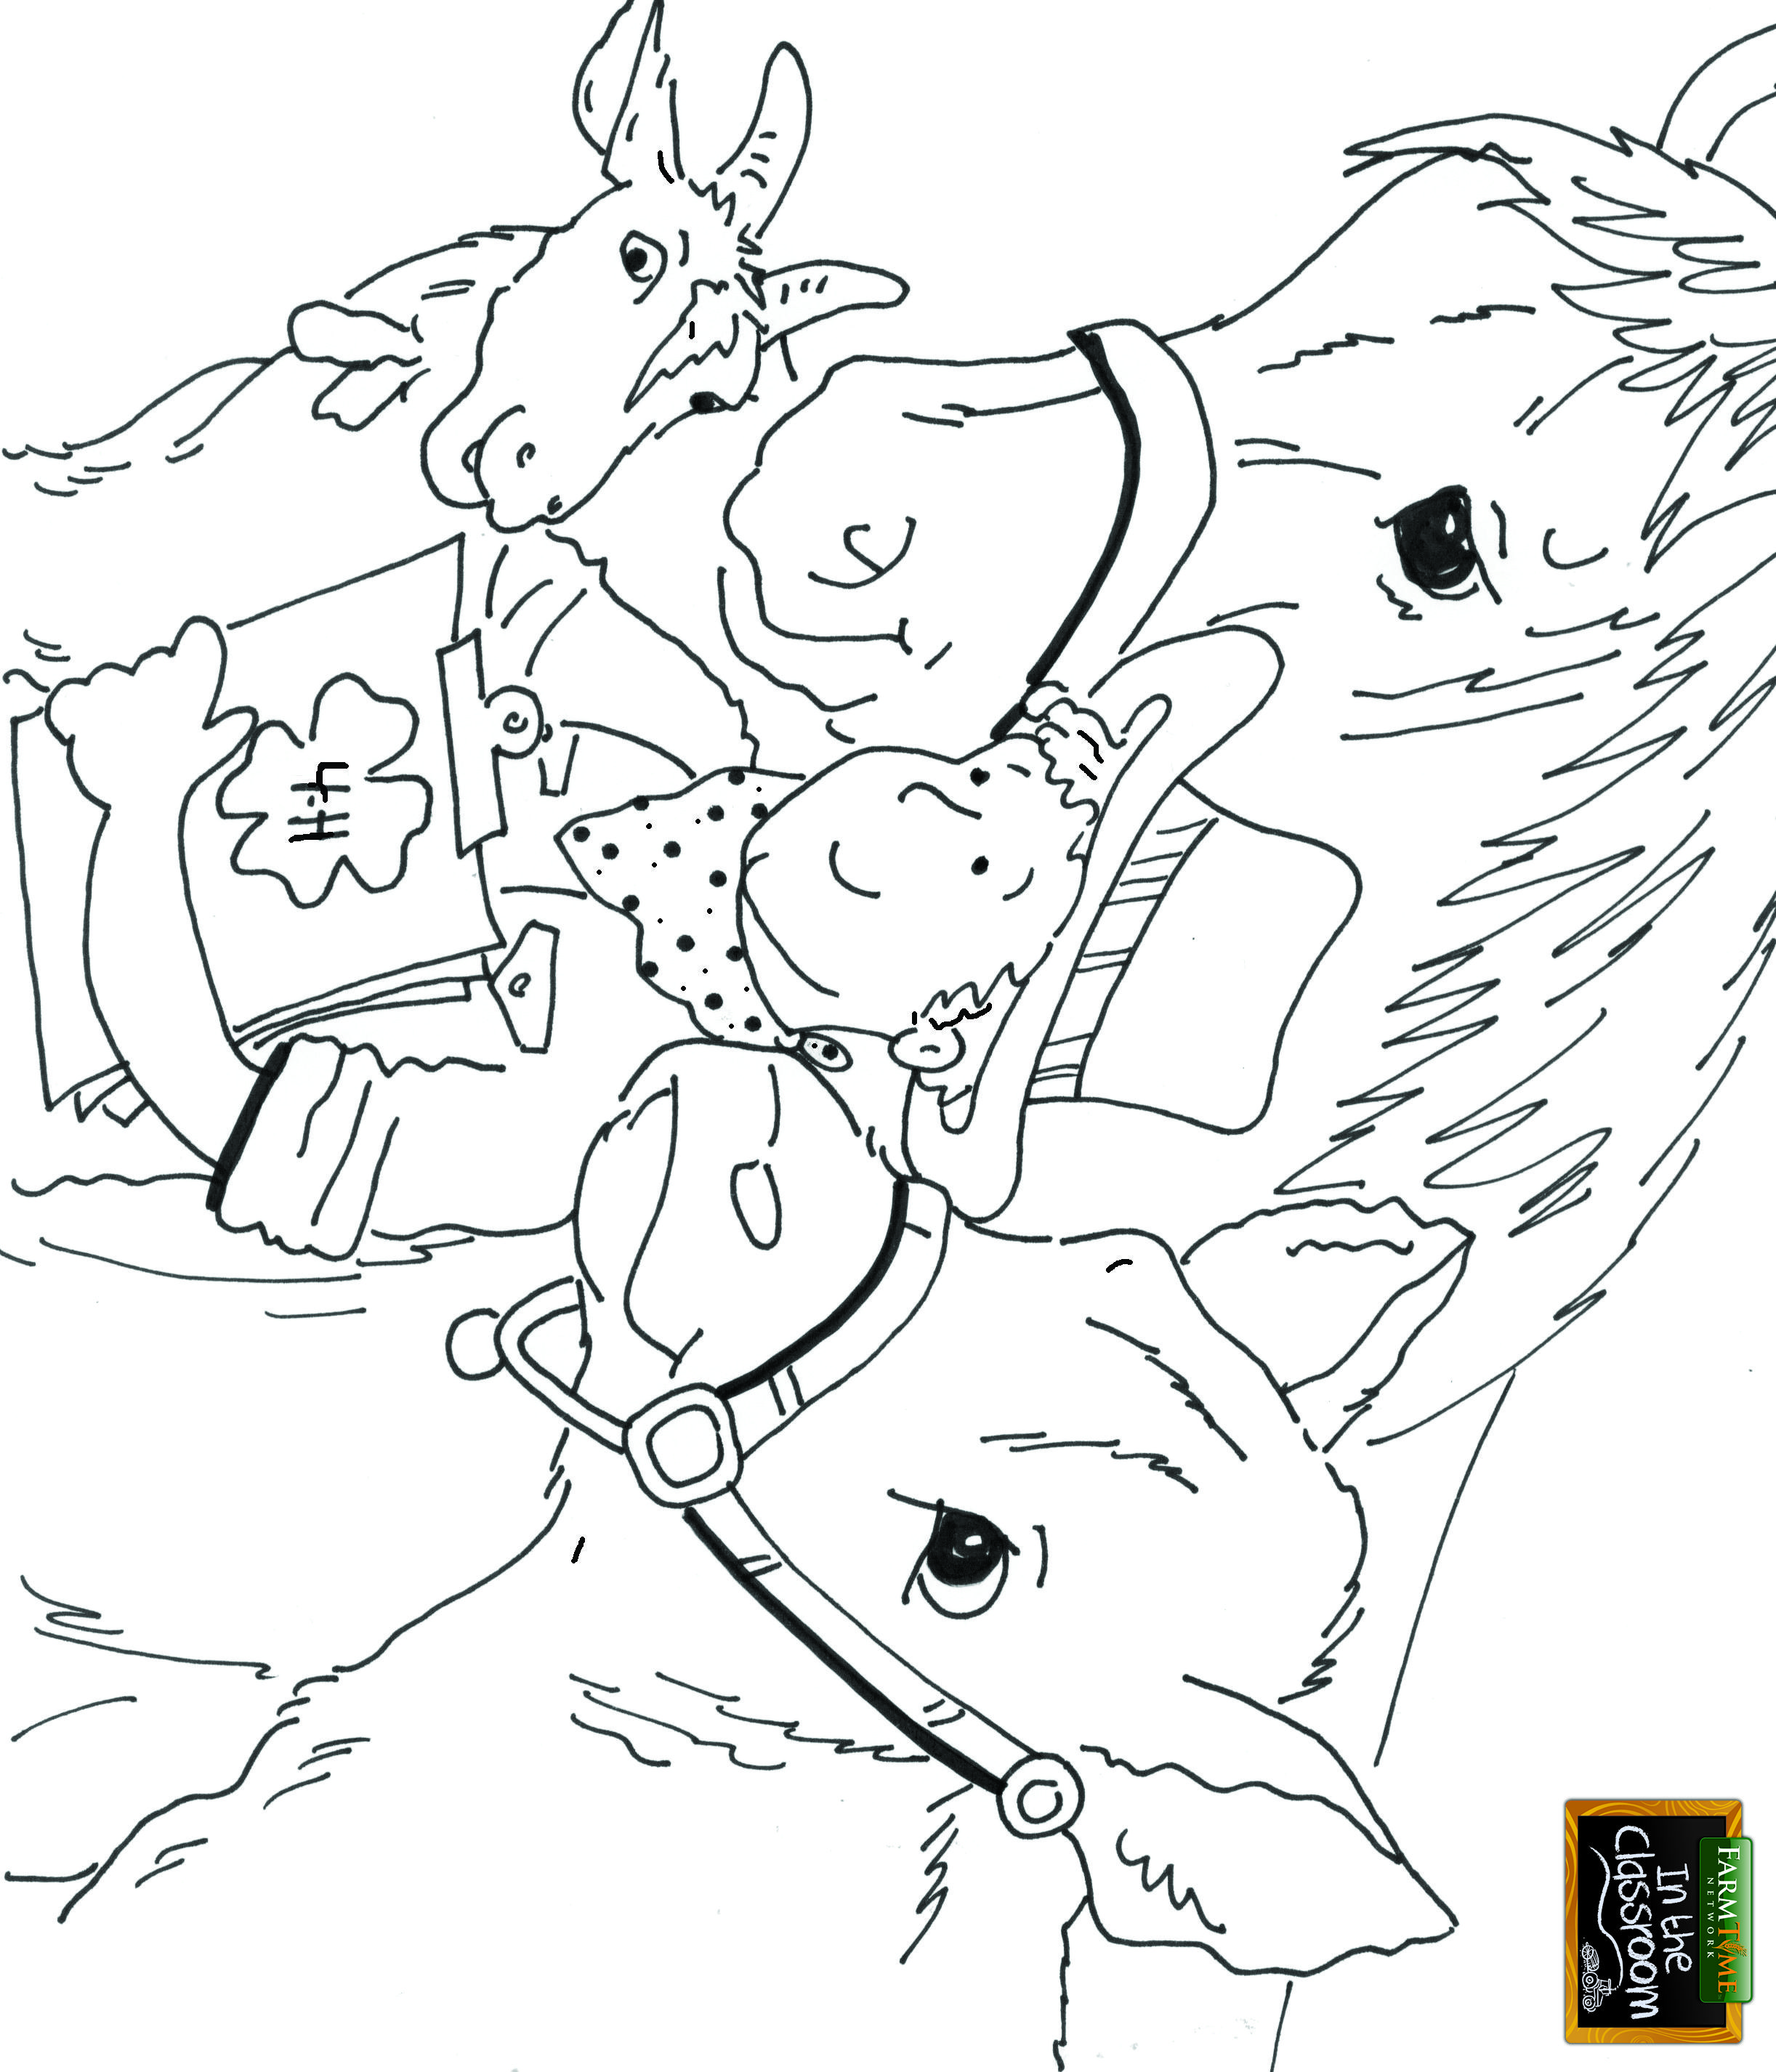 Www Farmtimeclassroom Com Free Coloring Page 4h Horses Cows